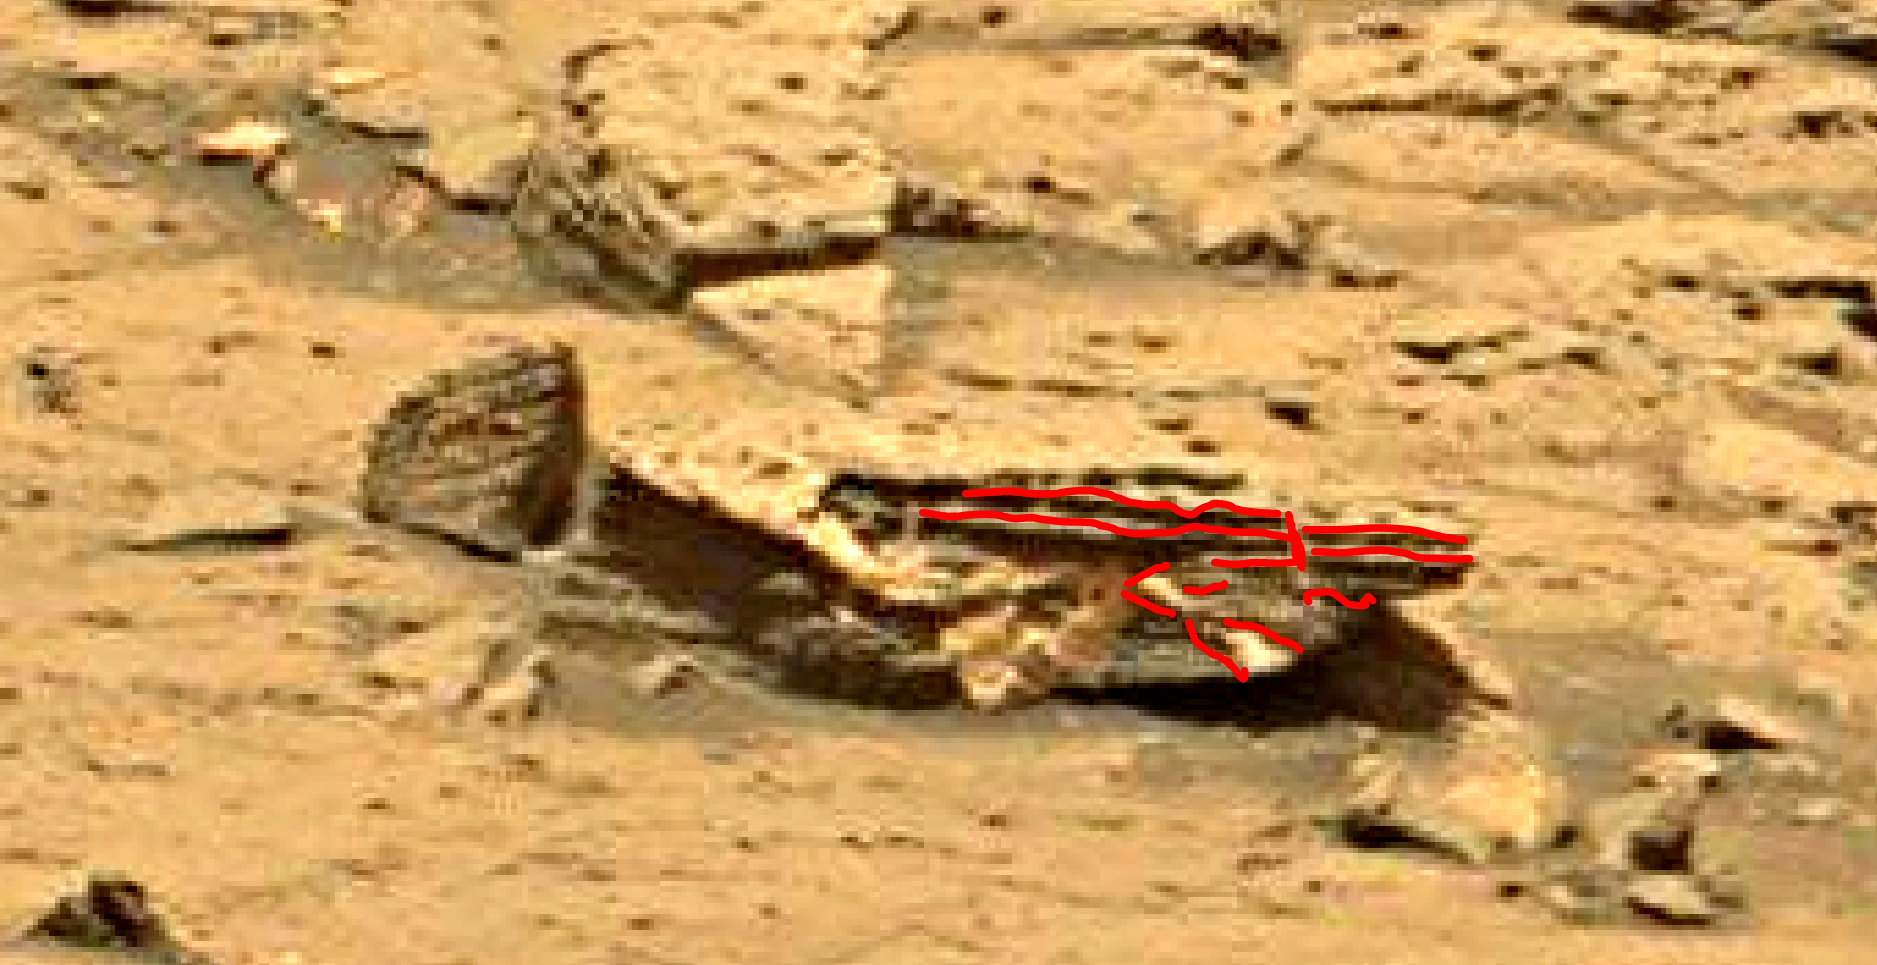 mars sol 1353 anomaly-artifacts 15a was life on mars